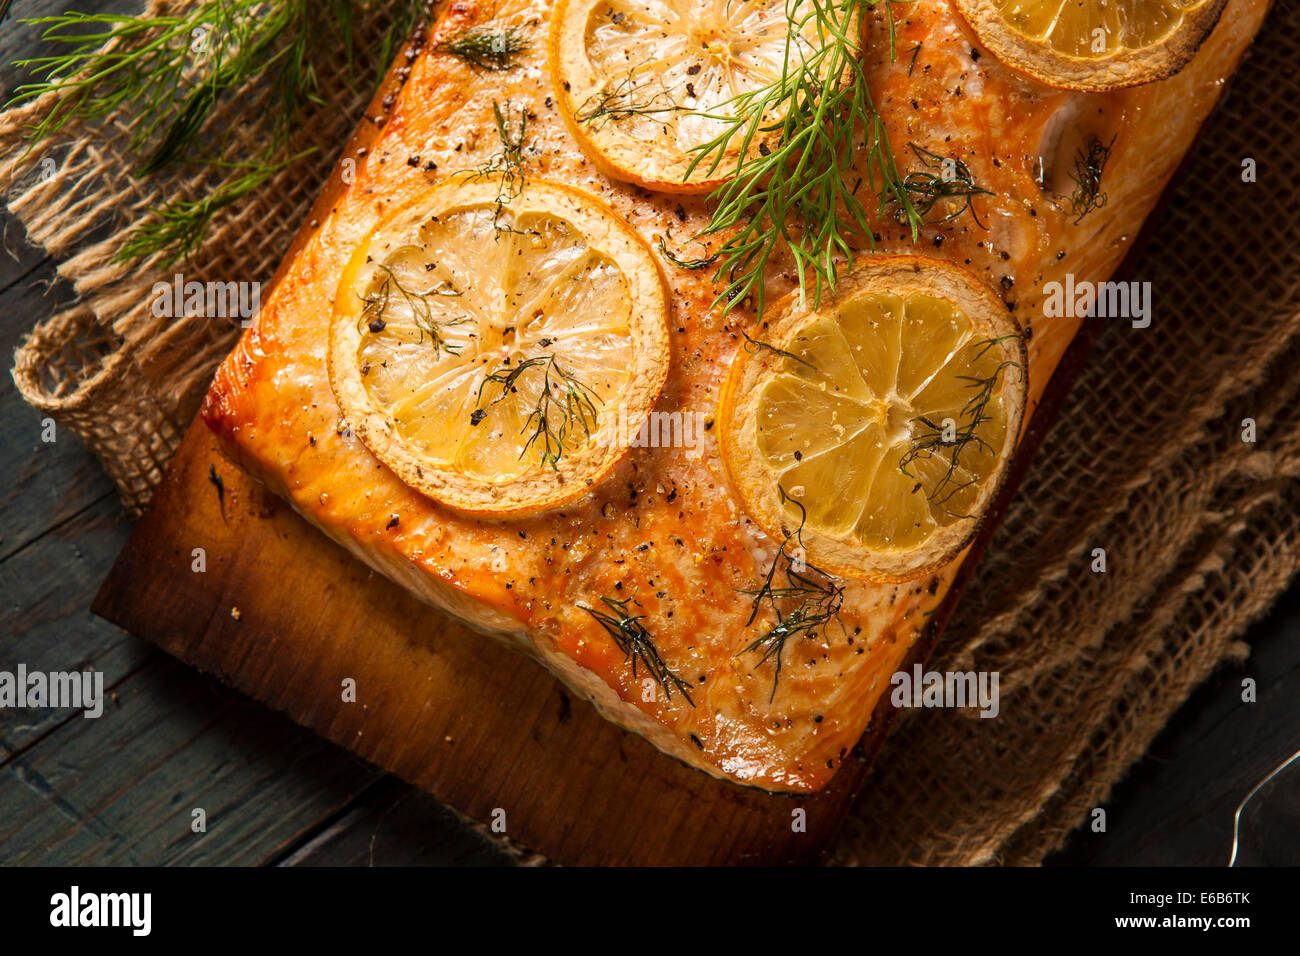 Homemade Grilled Salmon on a Cedar Plank with Dill - Stock Image